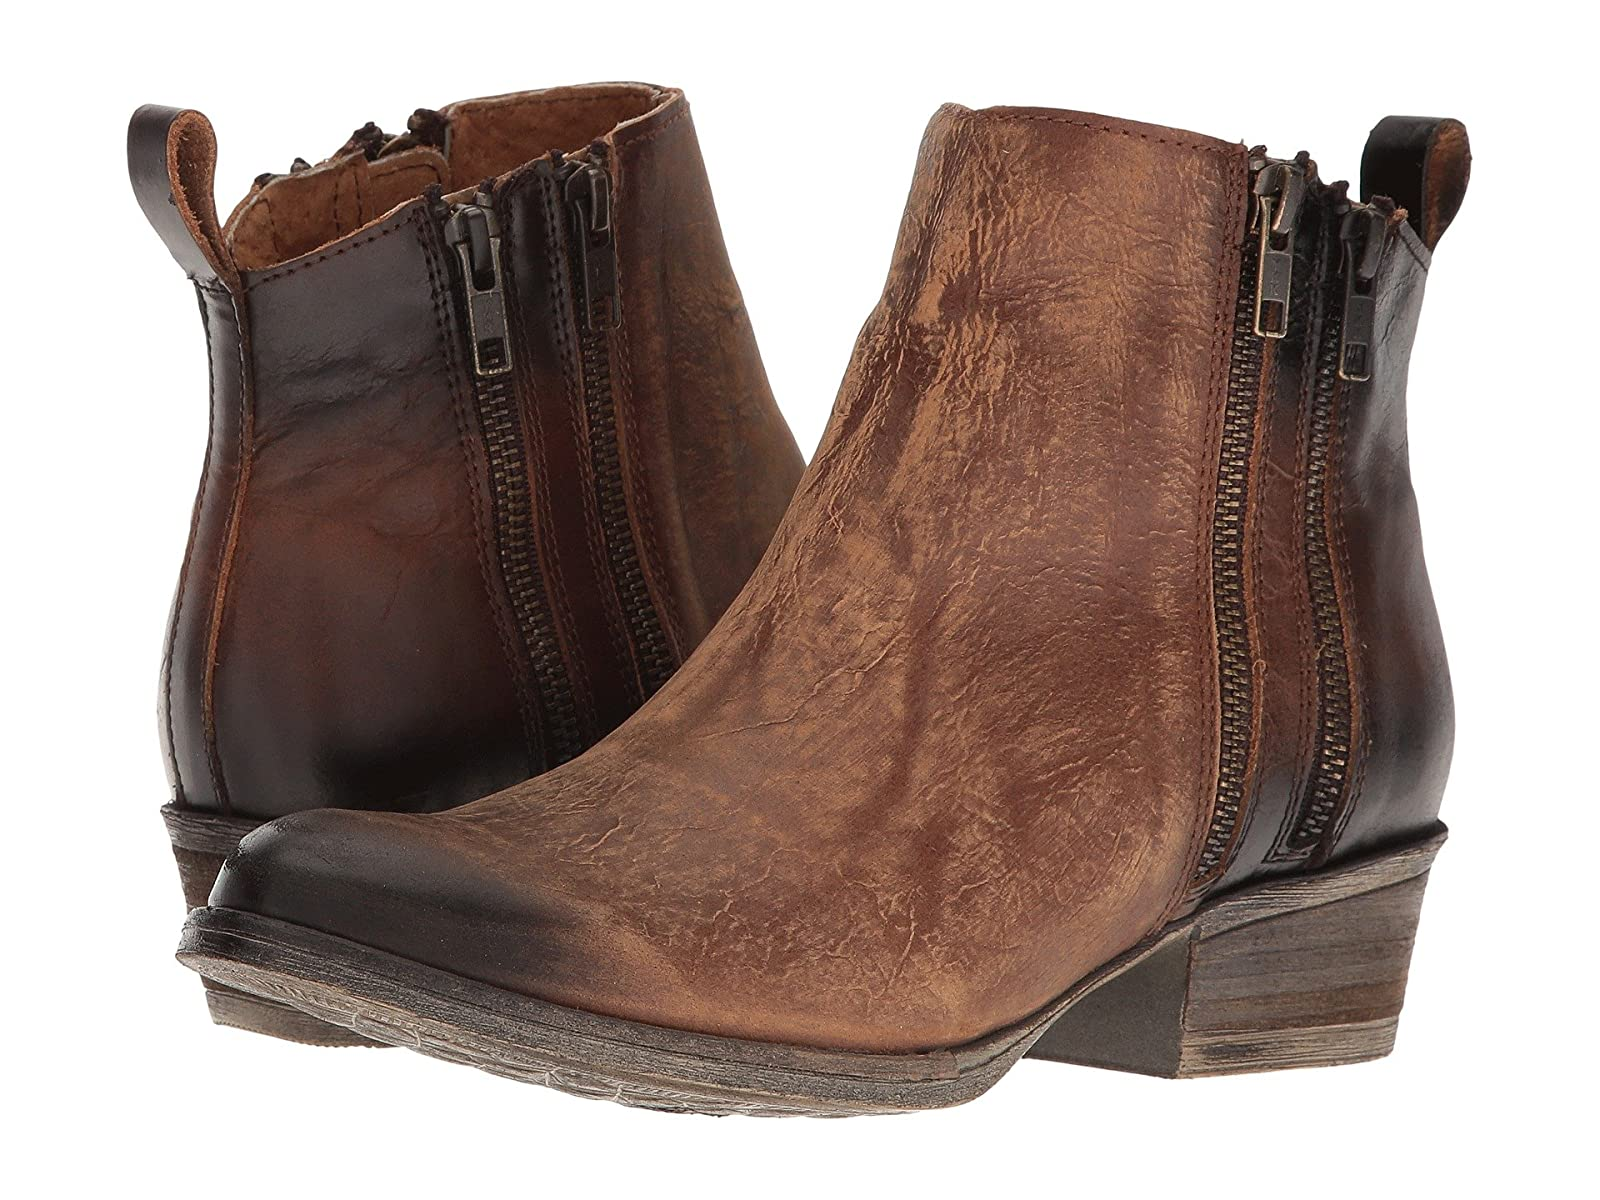 Corral Boots Q0025Affordable and distinctive shoes